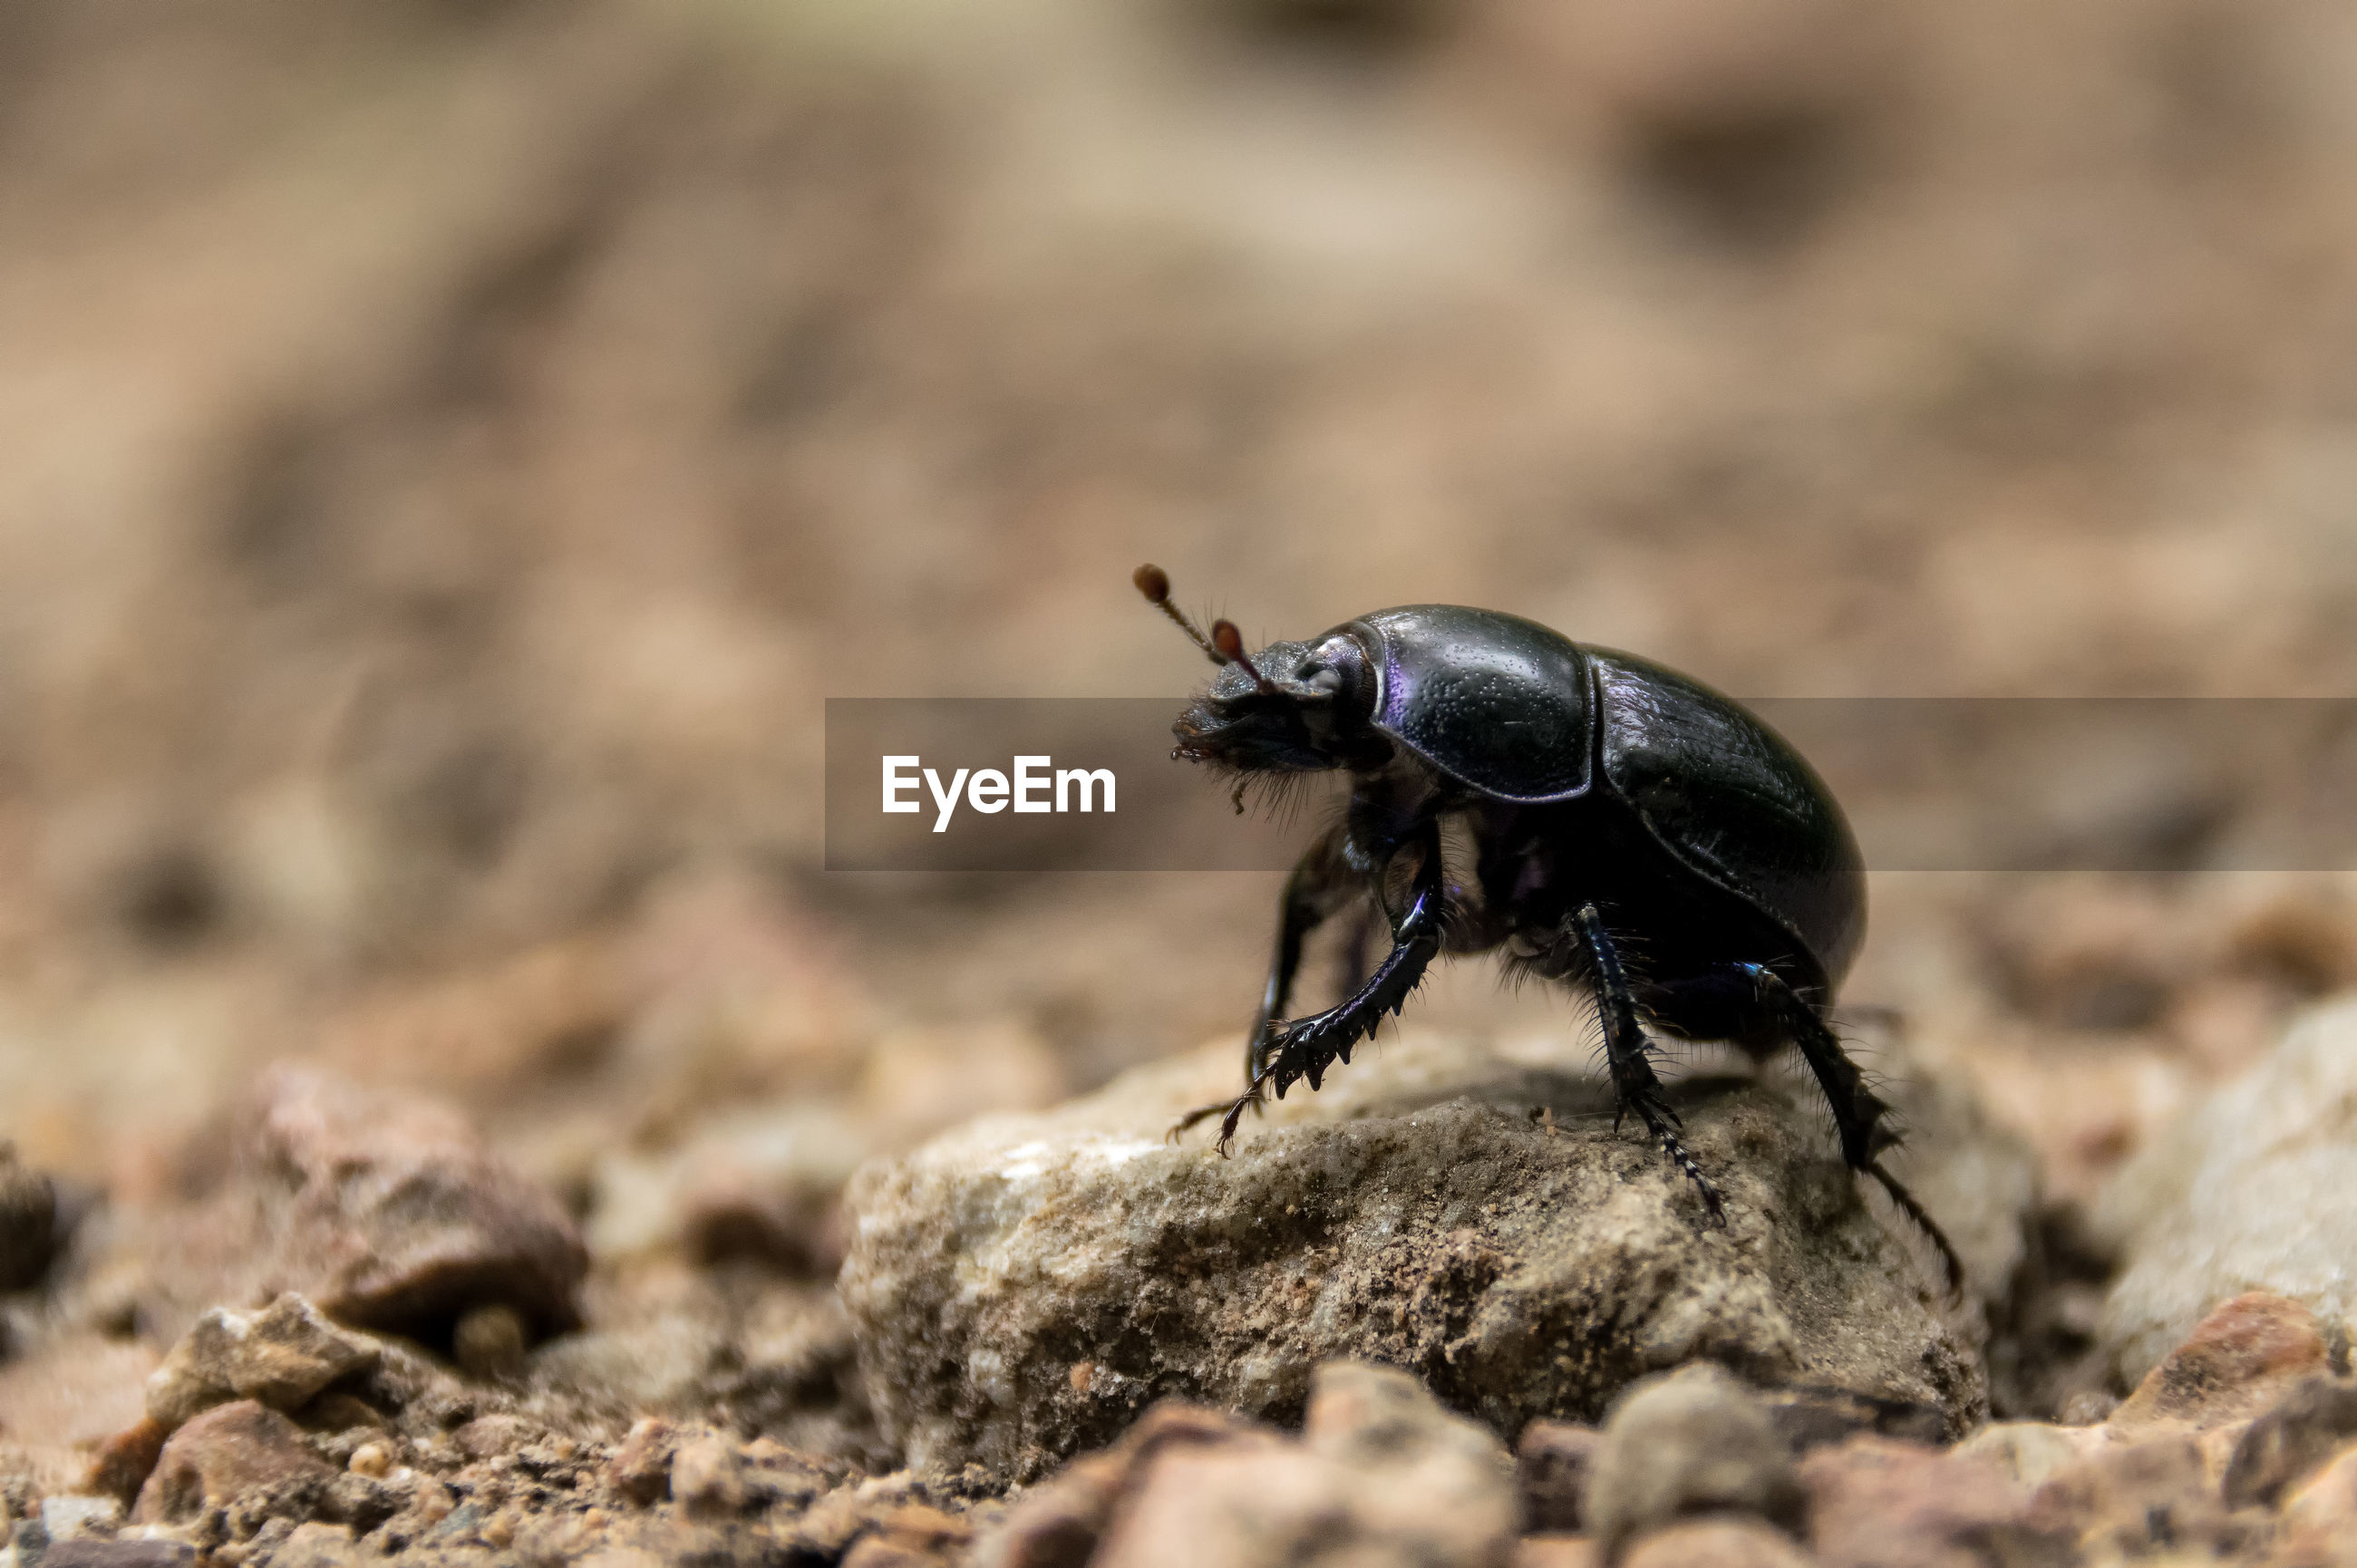 Close-up of black beetle